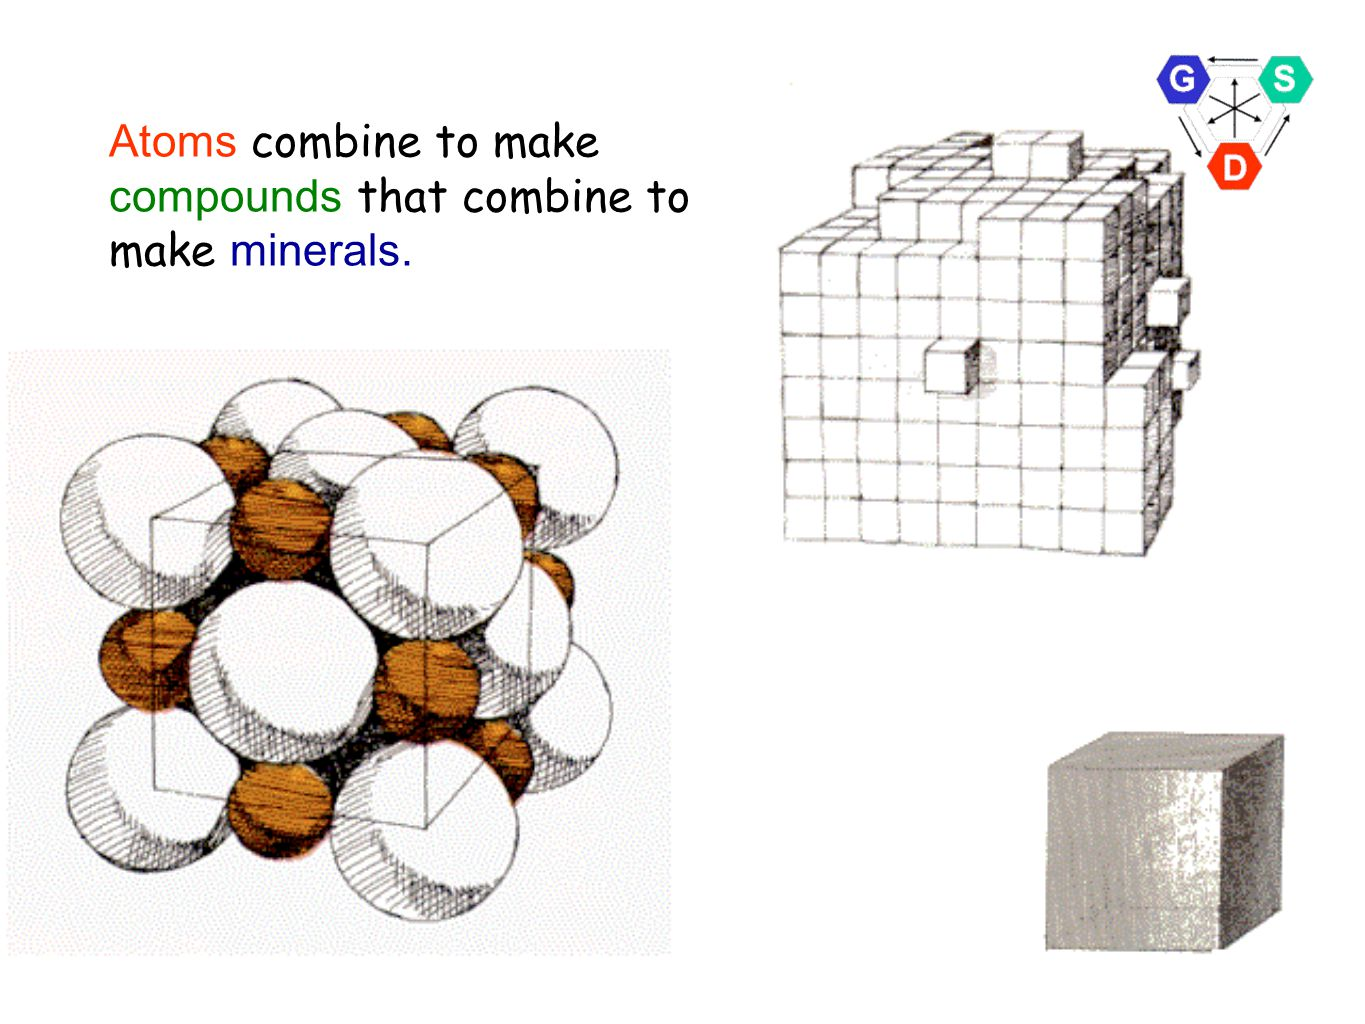 Atoms combine to make compounds that combine to make minerals.